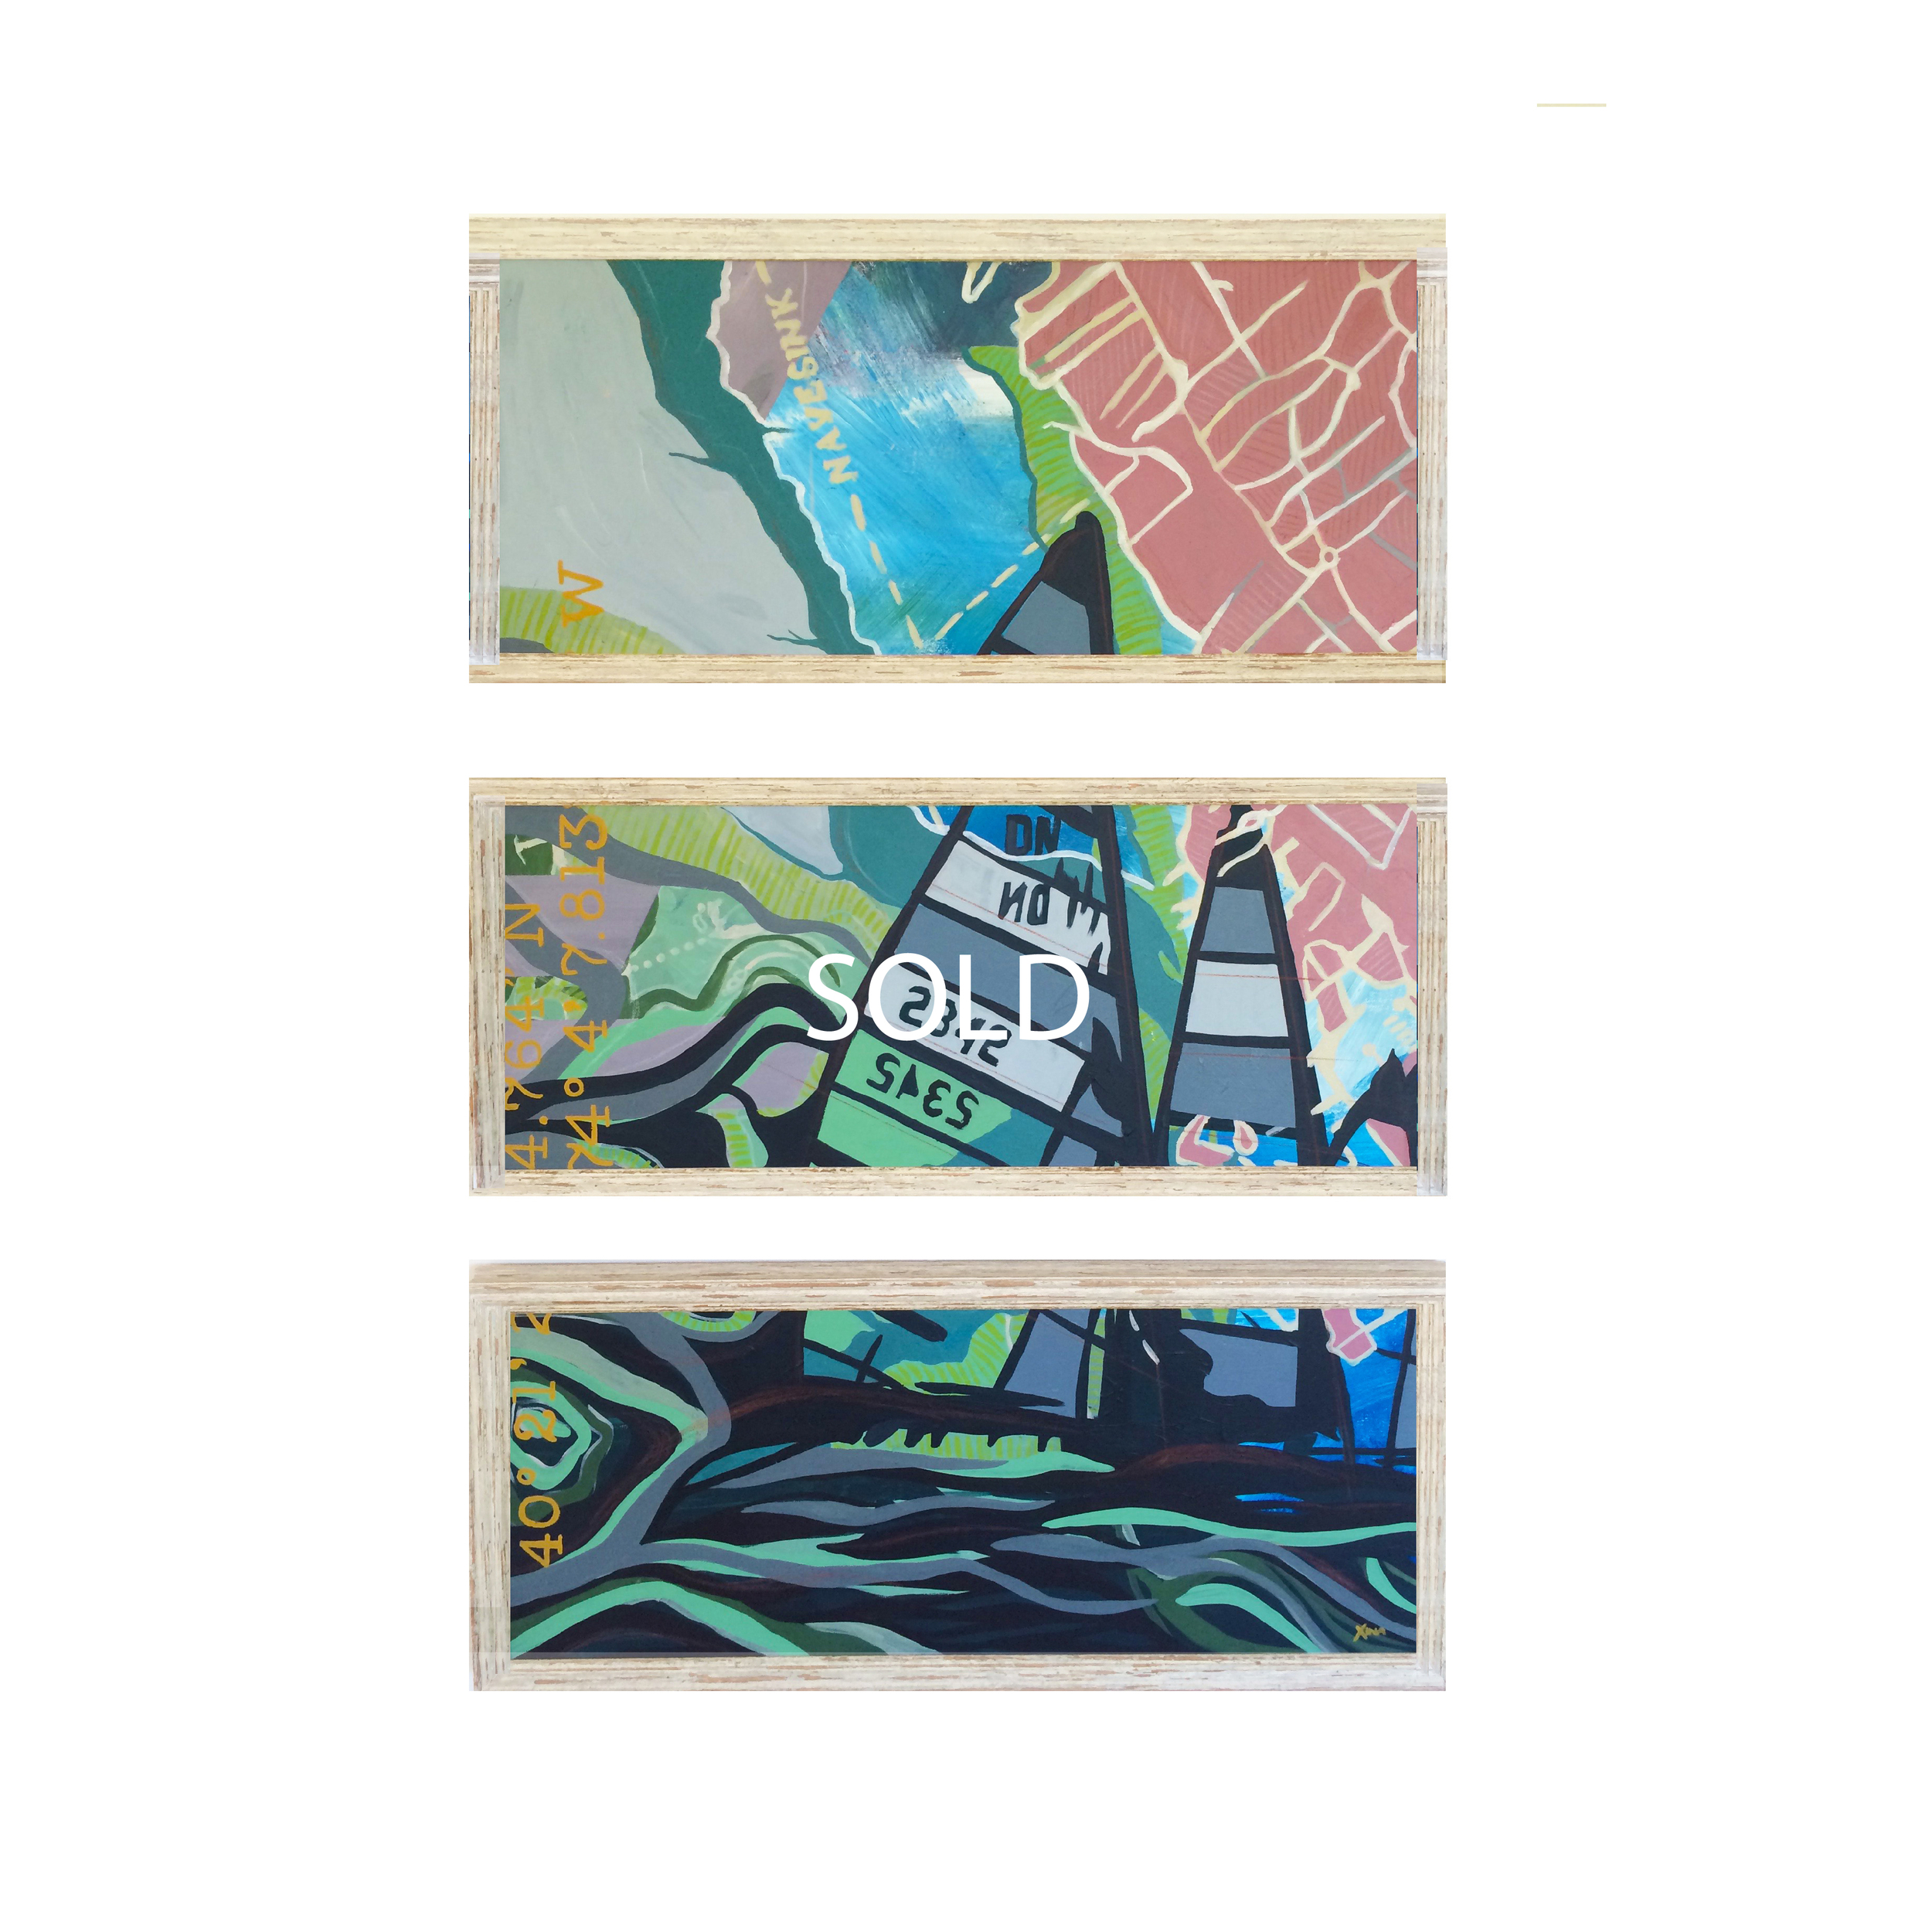 HOME   This is one of the most unique pieces in the collection. A triptych piece featuring vibrant colors running through the sailboats, high seas and the Navesink River. The background is filled with layers of nautical coordinates and topographic maps of Monmouth County. Custom Larson Juhl frame made of 100% distressed wood   |   3 frames 14 x 32 | Hangs at 14 x 45